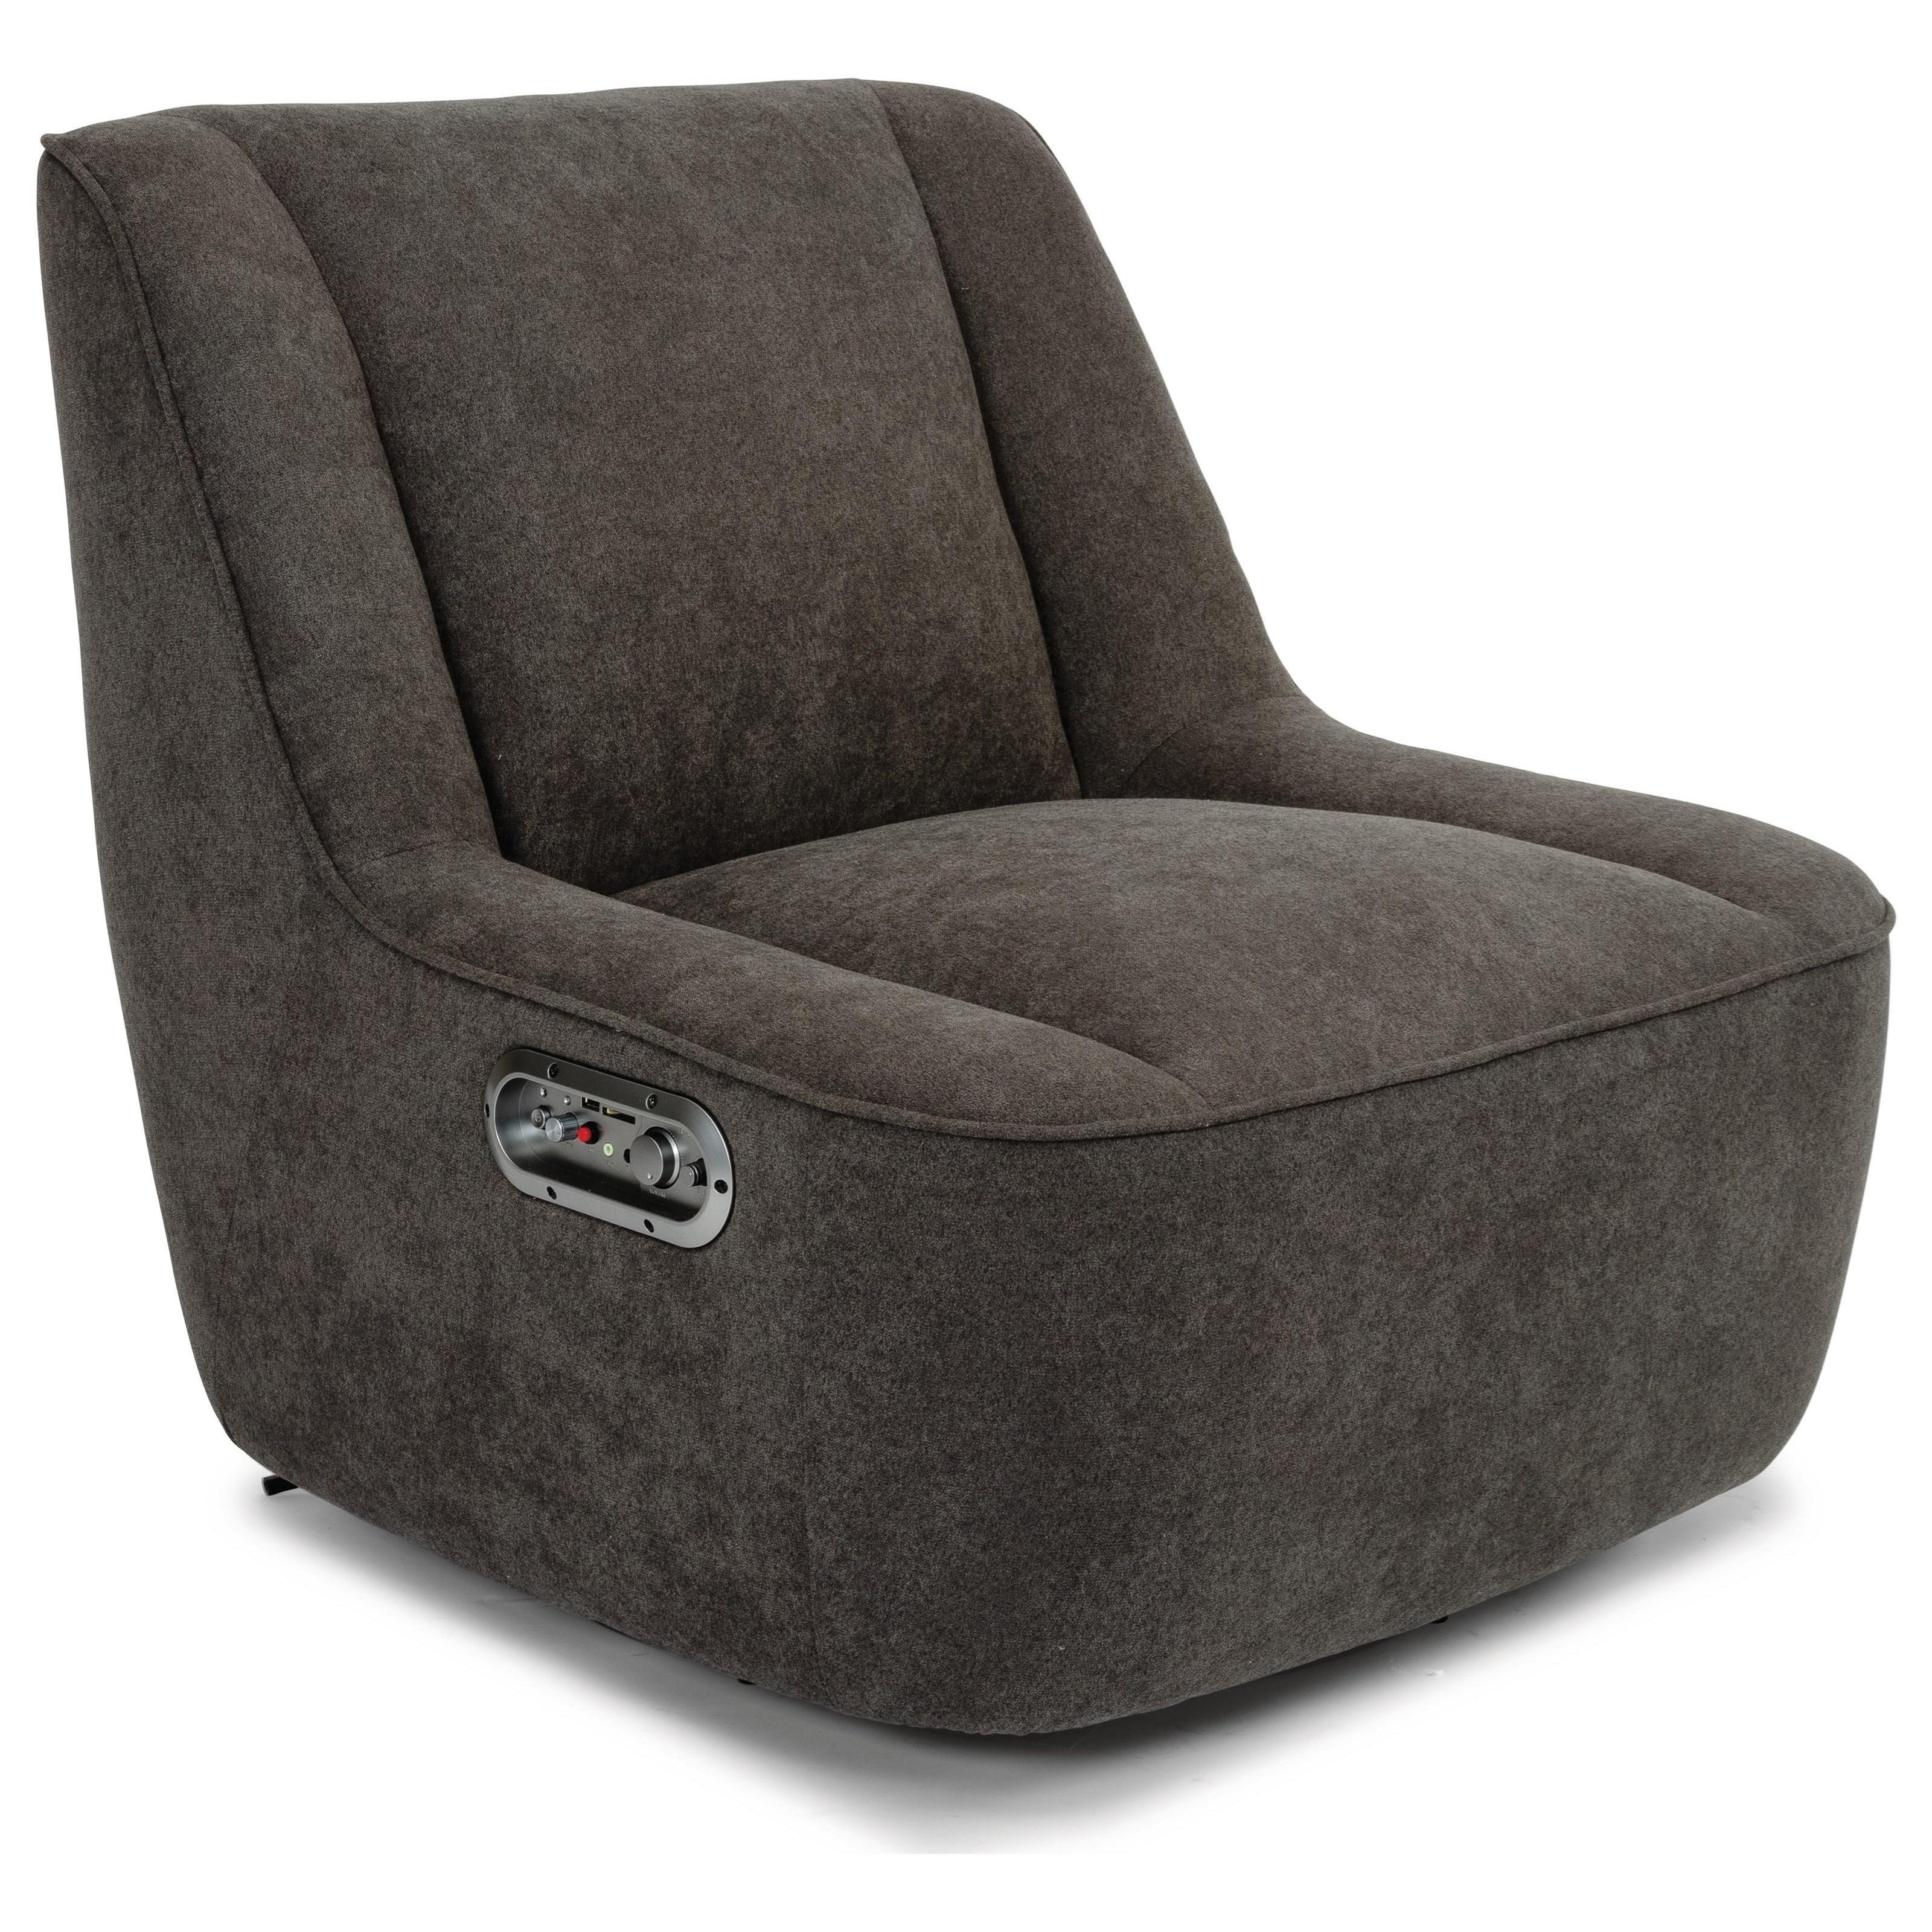 Latitudes - Status Gaming Chair  by Flexsteel at Zak's Home